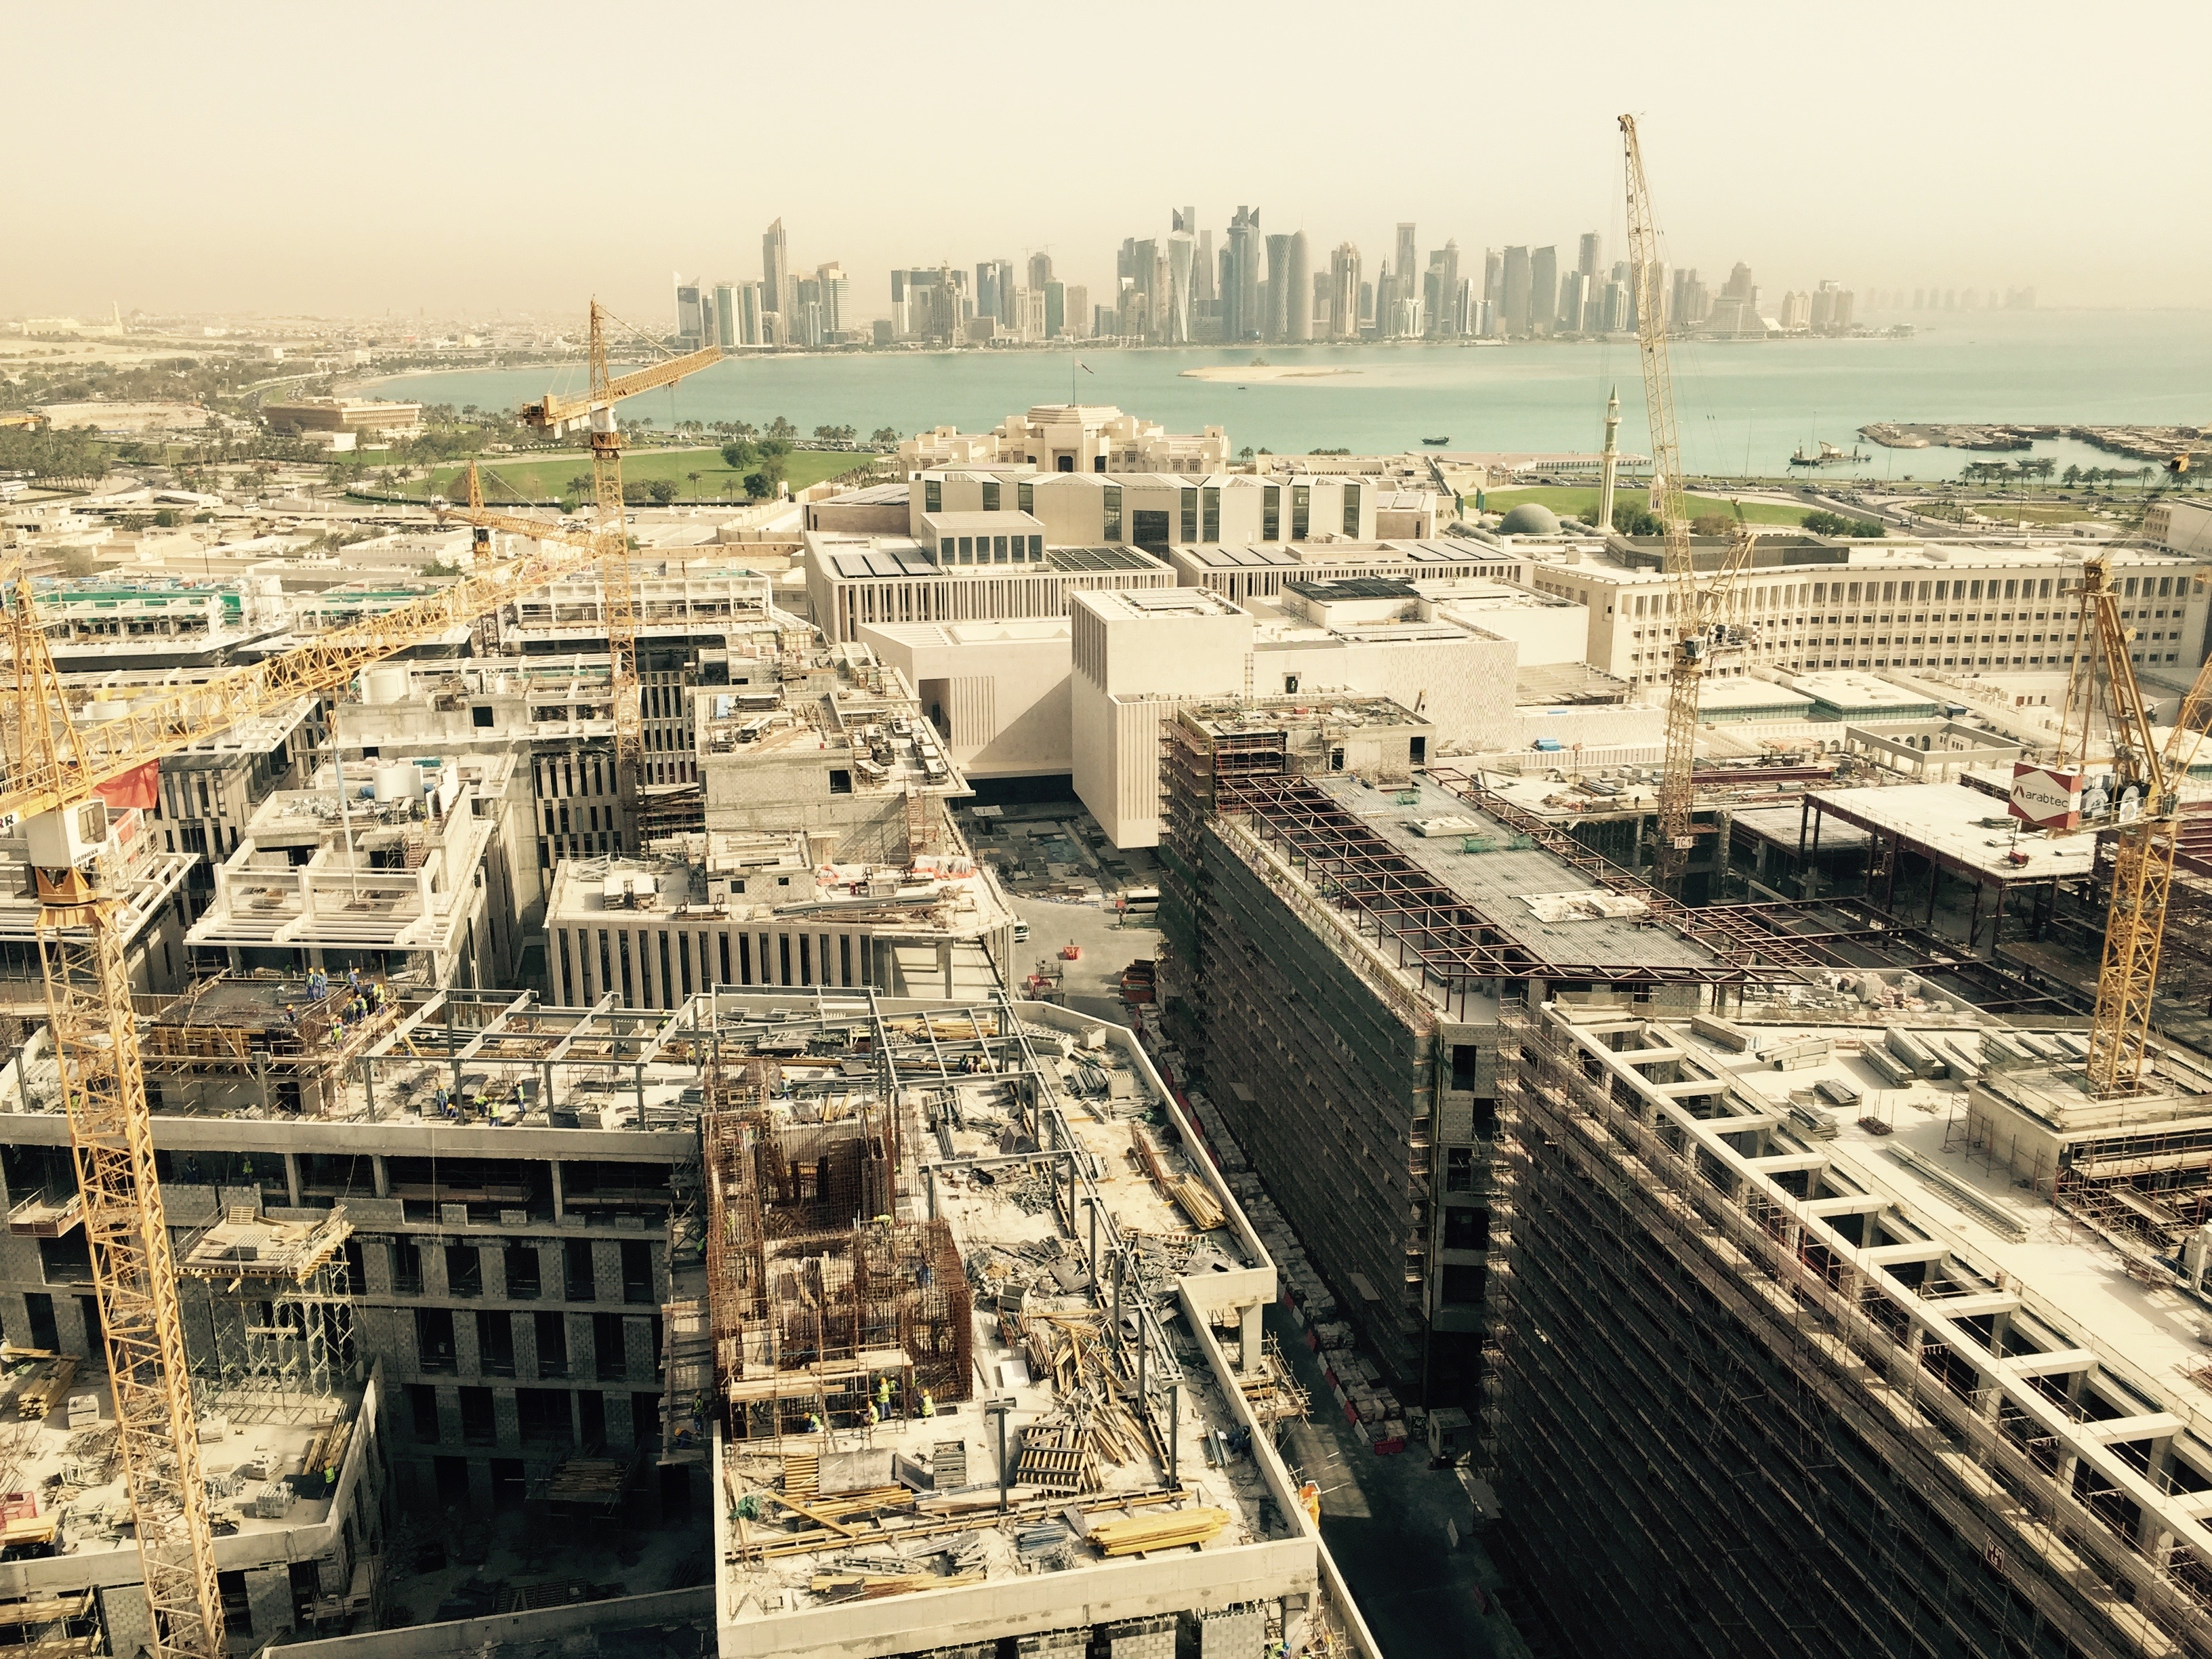 Construction of Downtown Doha well underway, as of April 2015